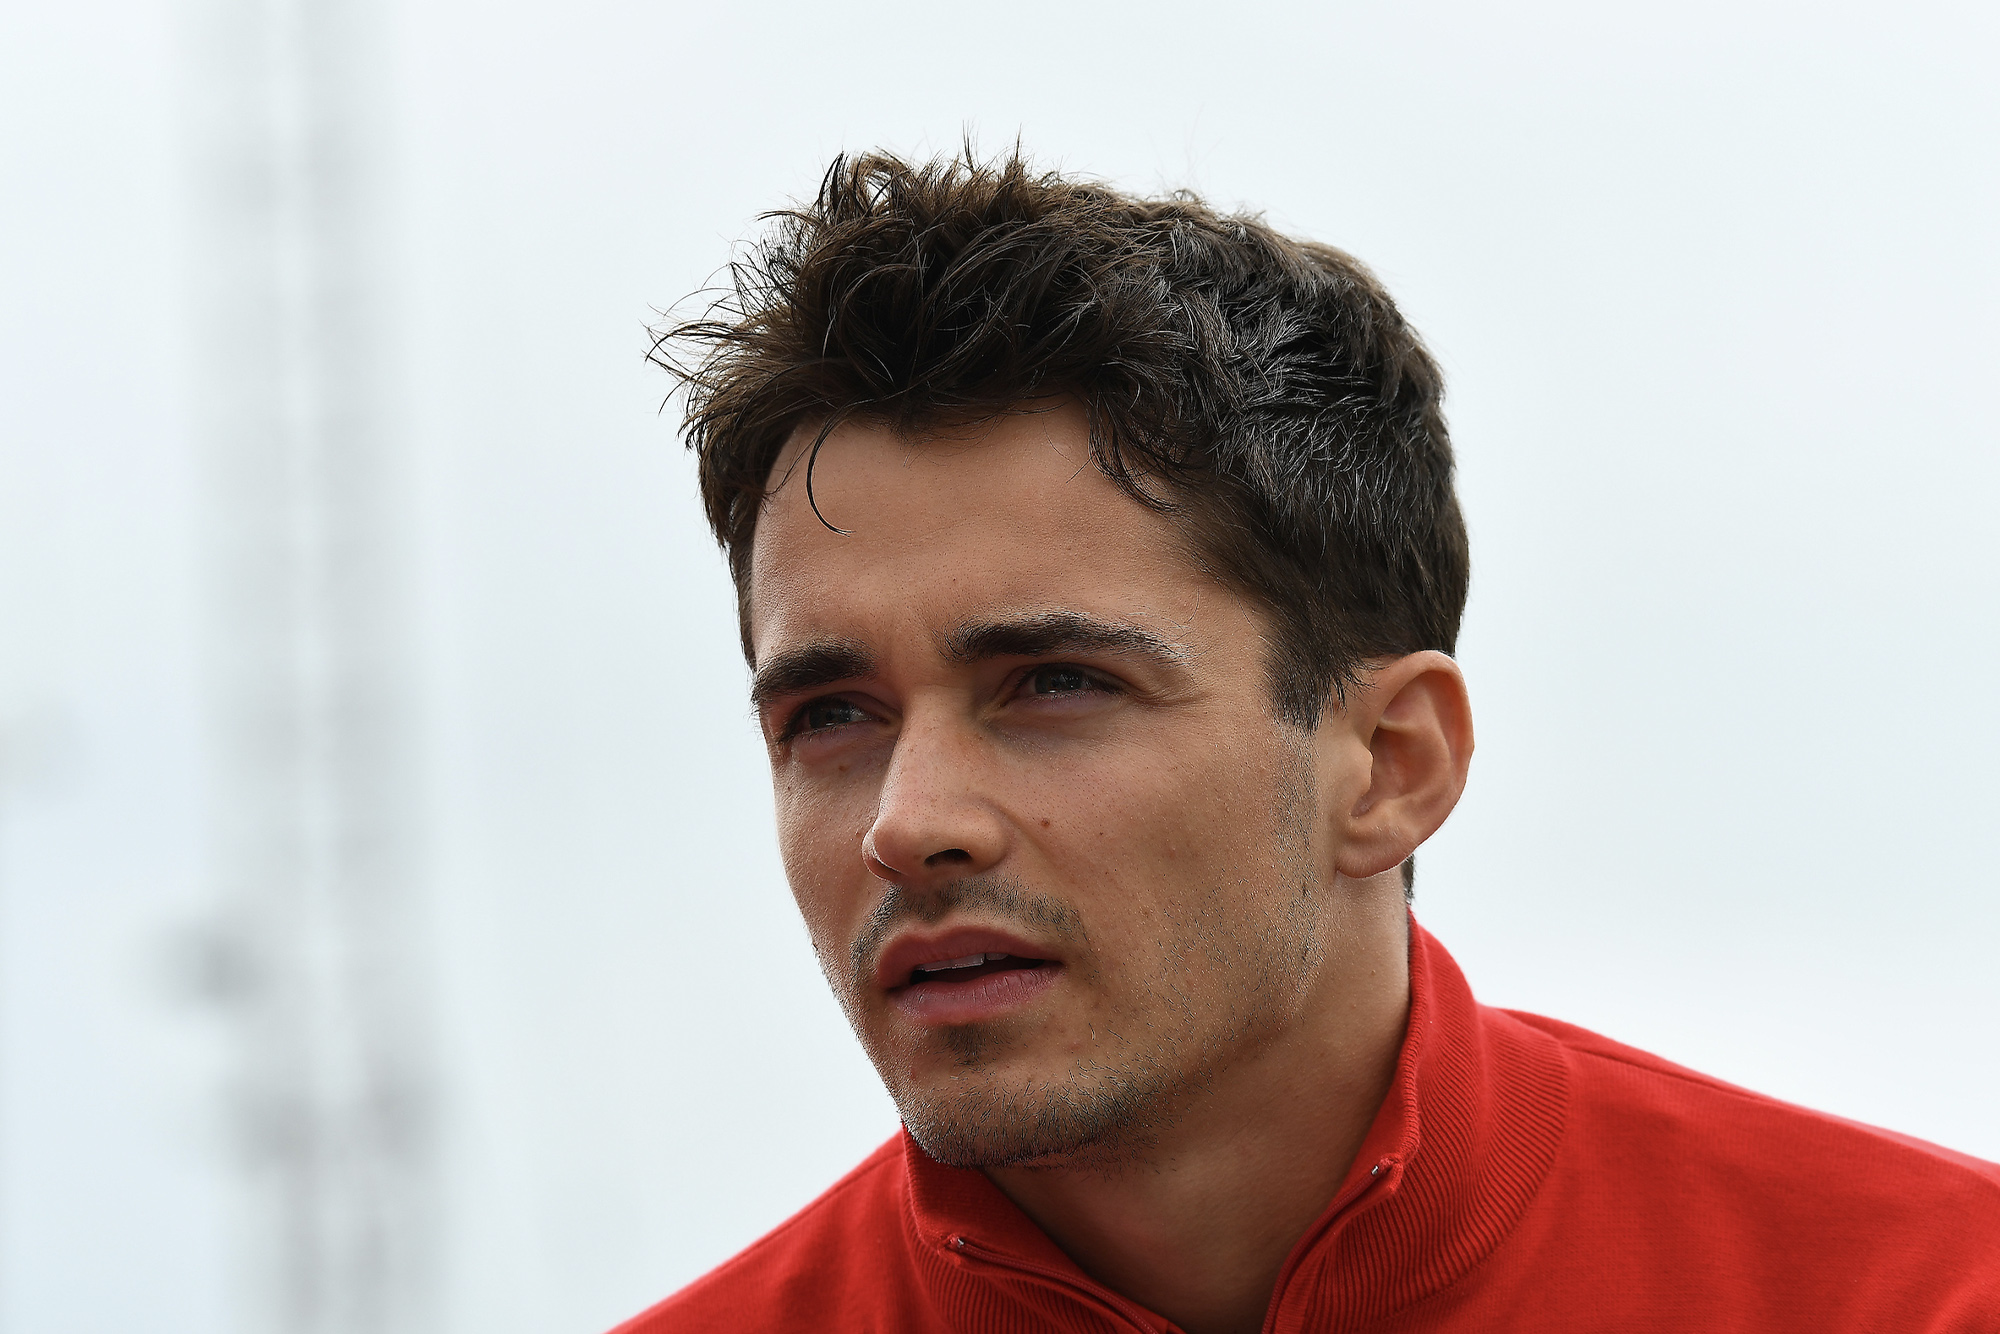 Leclerc will race through Monaco in cult C'était Un Rendez-Vous remake